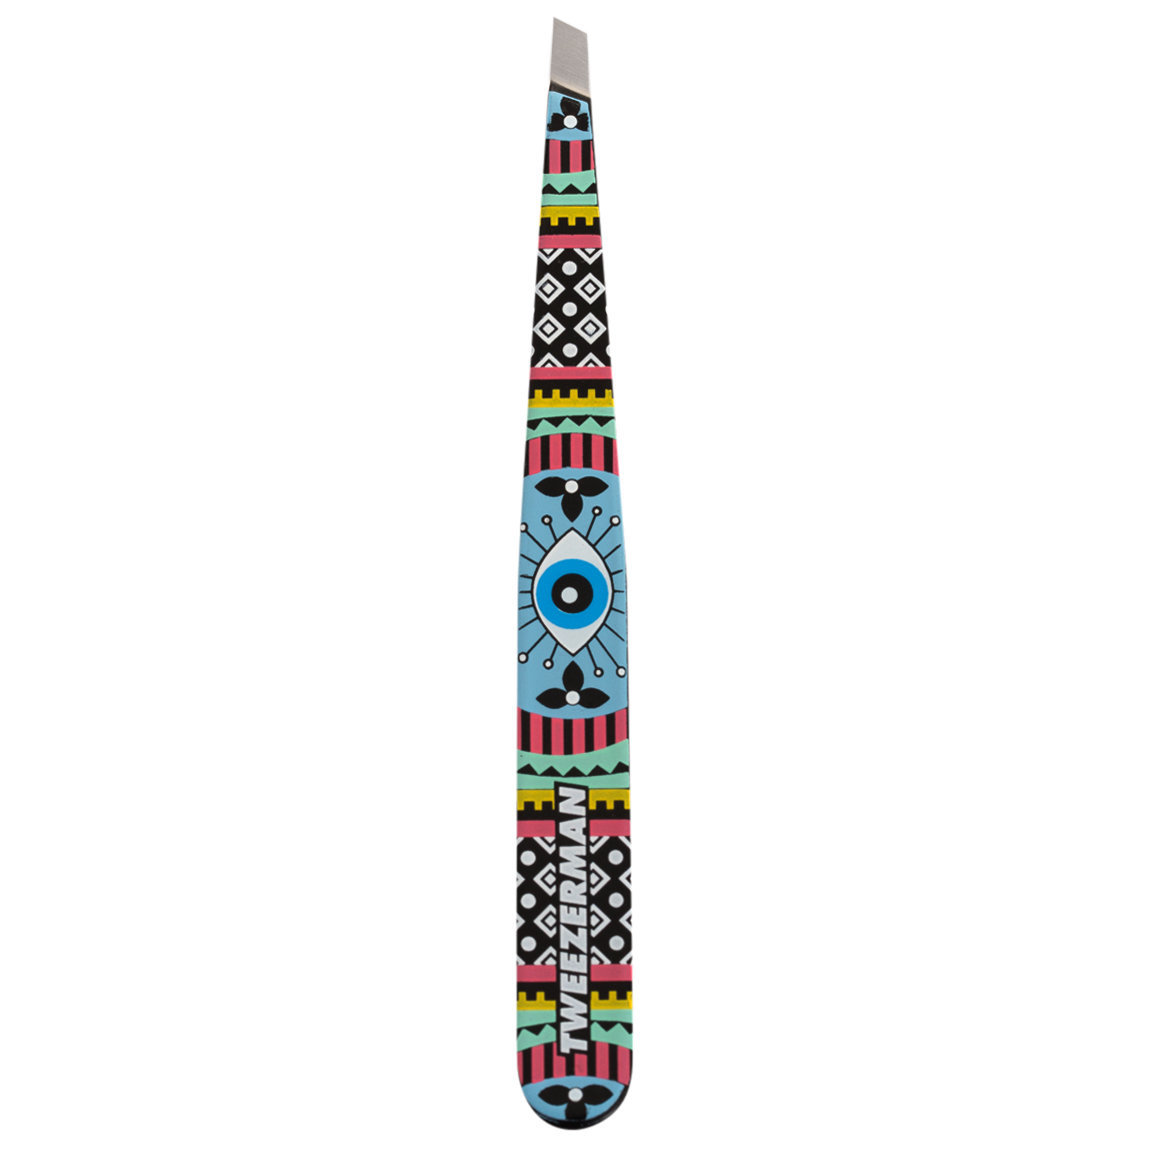 Tweezerman Slant Tweezer Aztec Eye product smear.